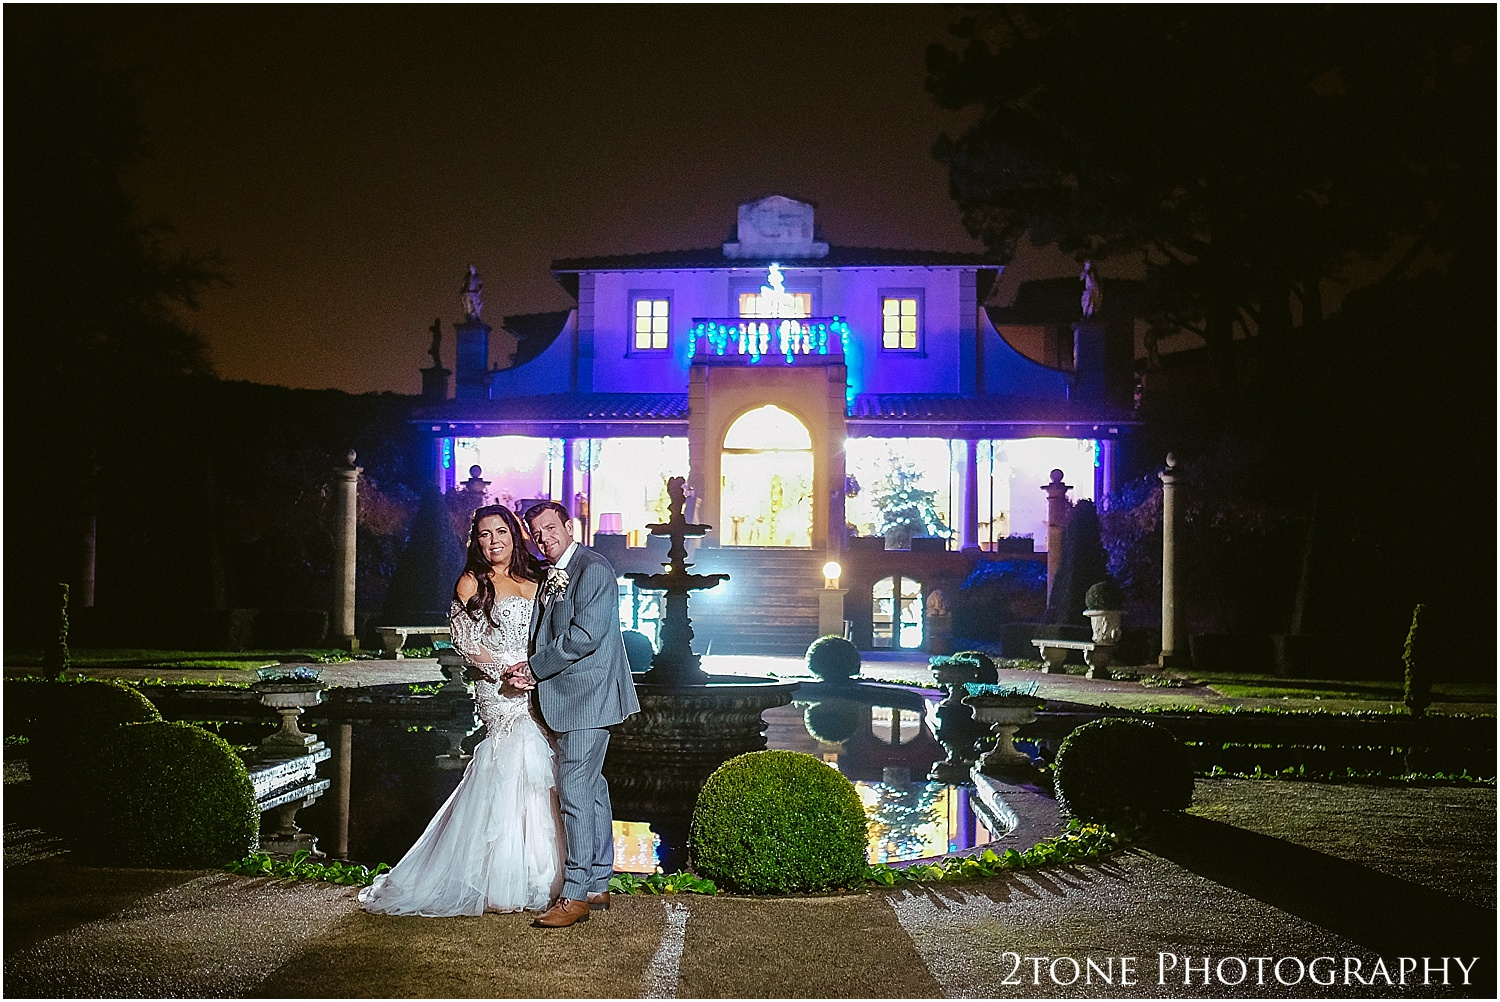 The Italian Villa, Dorset wedding photography